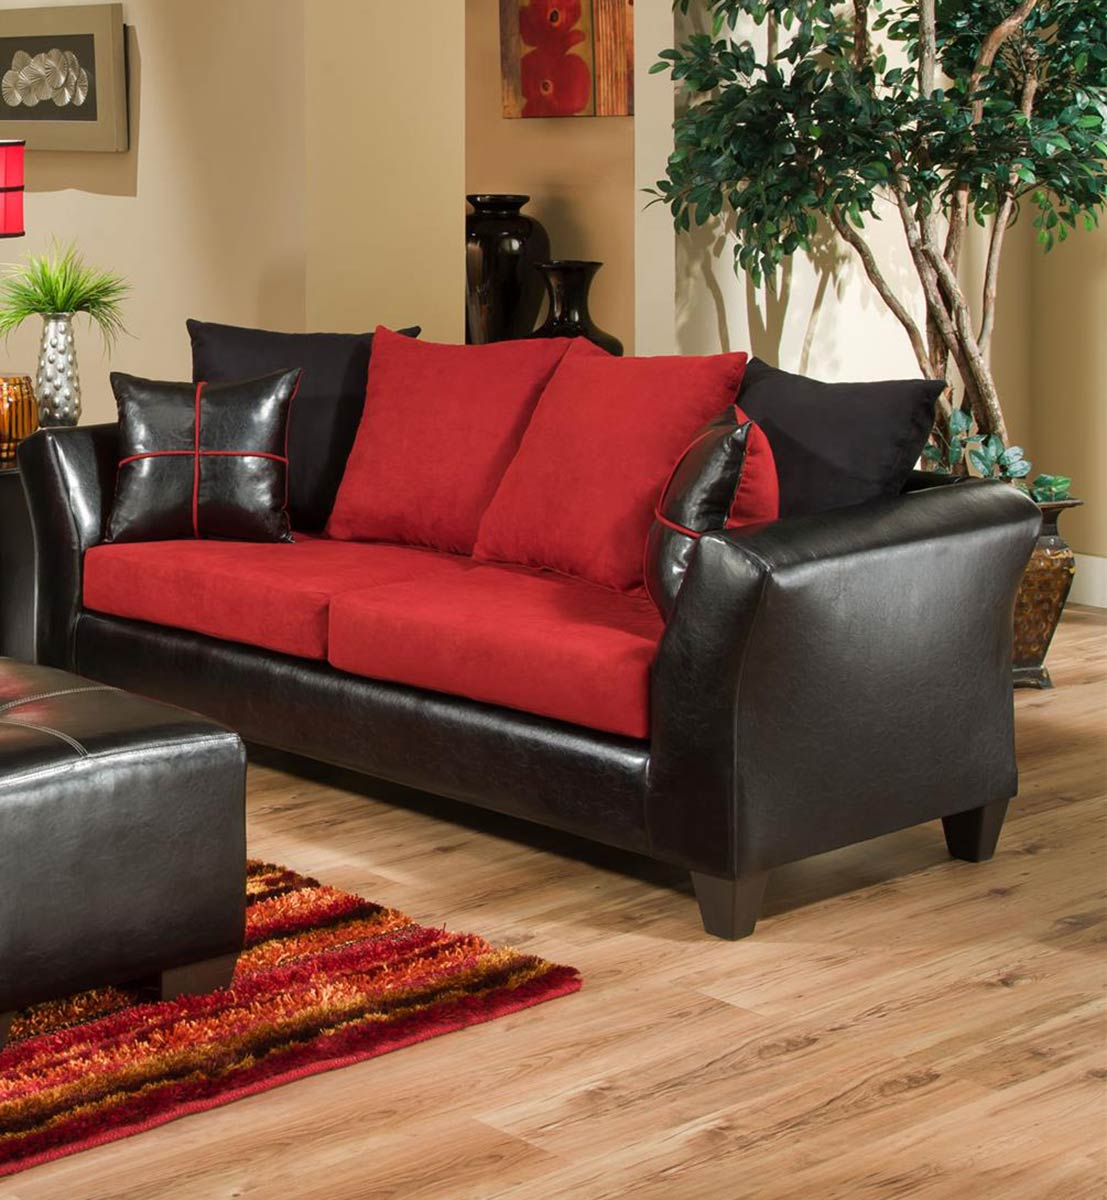 Chelsea Home Cira Sofa Set - Cardinal